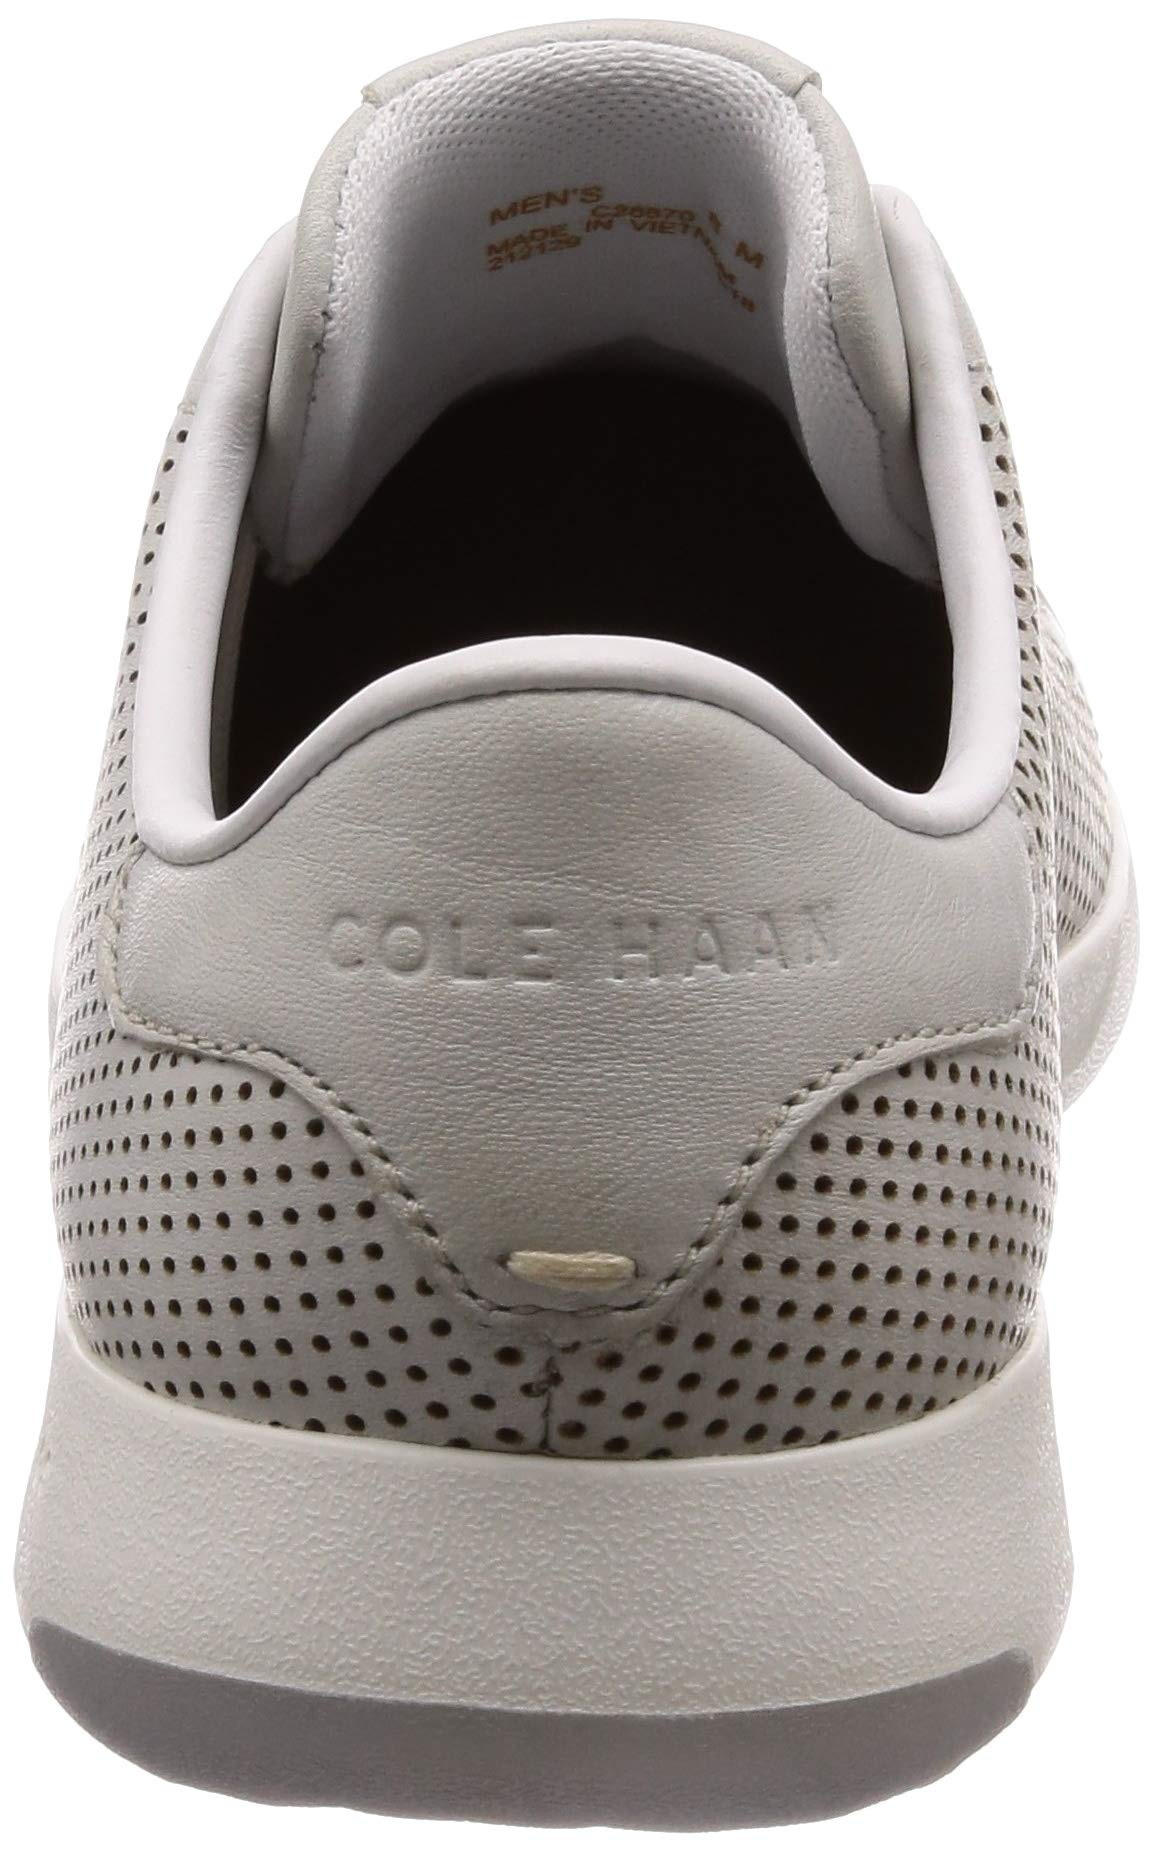 Cole Haan Mens Grandpro Tennis Sneaker 7 Chalk Tumbled Leather by Cole Haan (Image #2)